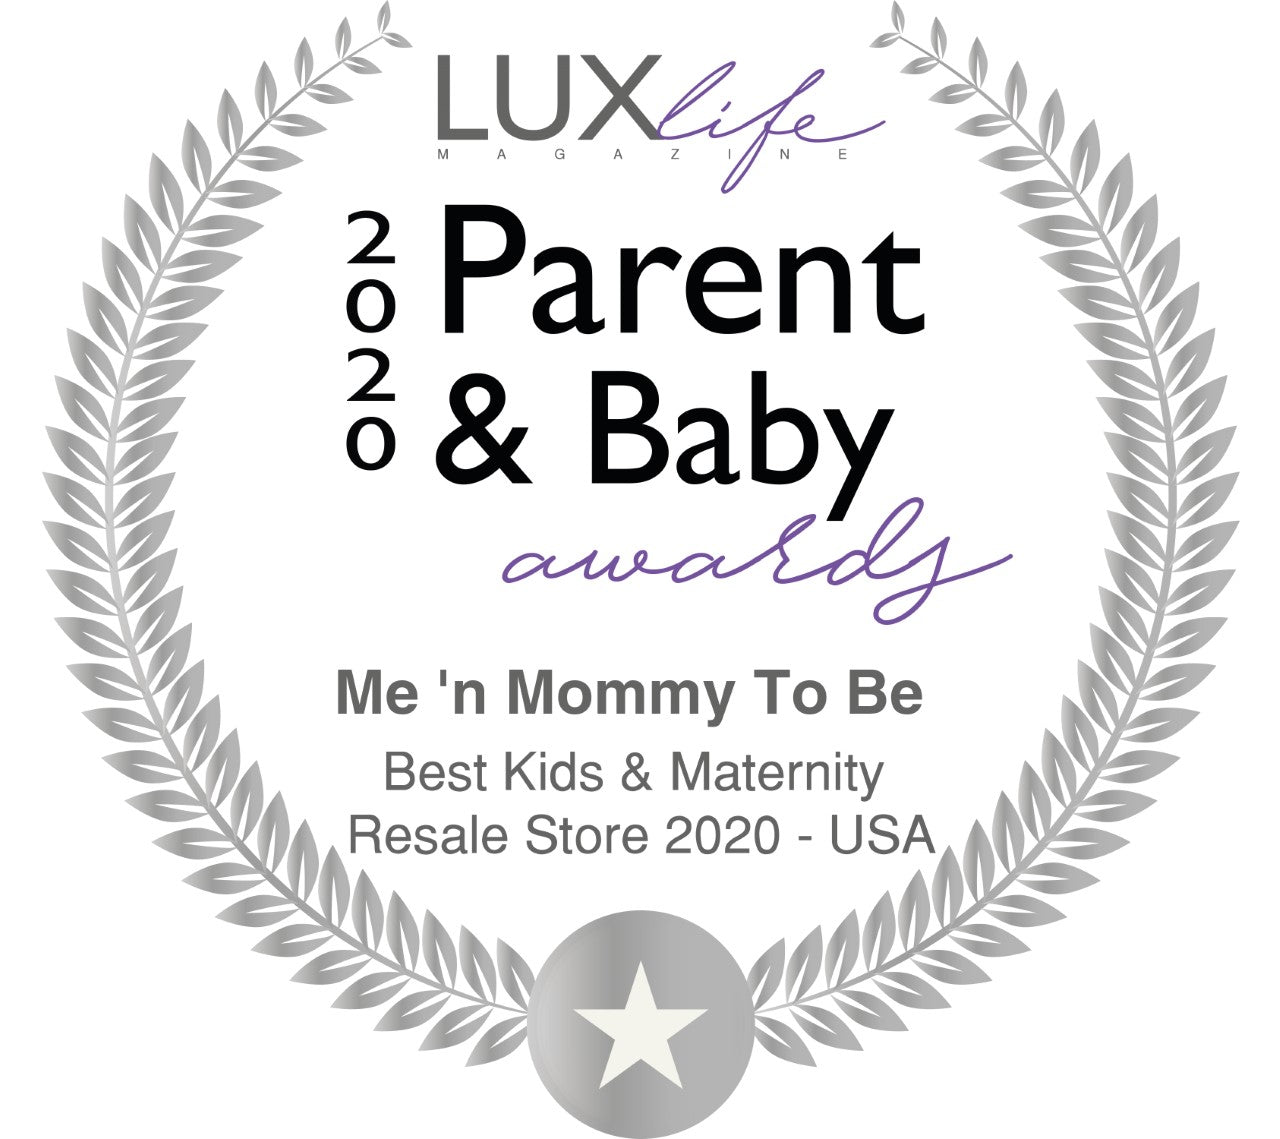 Voted Best Kids & Maternity Resale Store in the United States